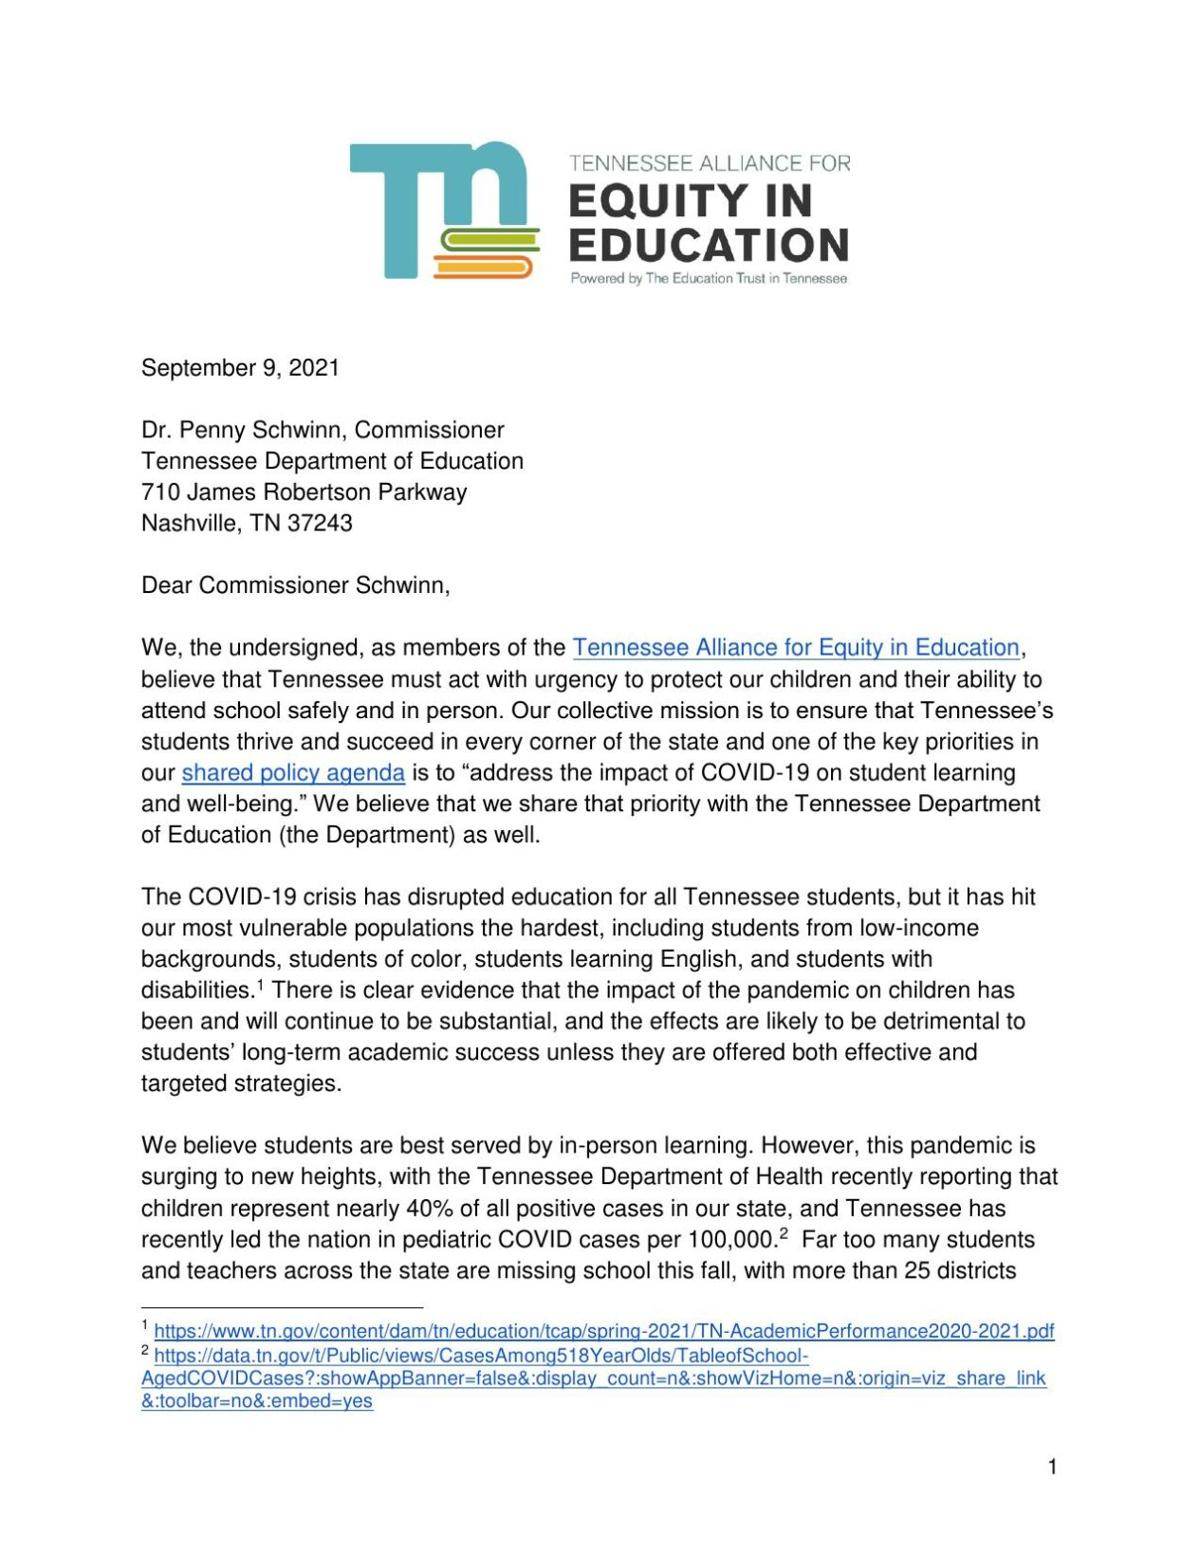 Tn Alliance for Equity in Education Asks for Clarity Regarding COVID-19 Protocols in Schools